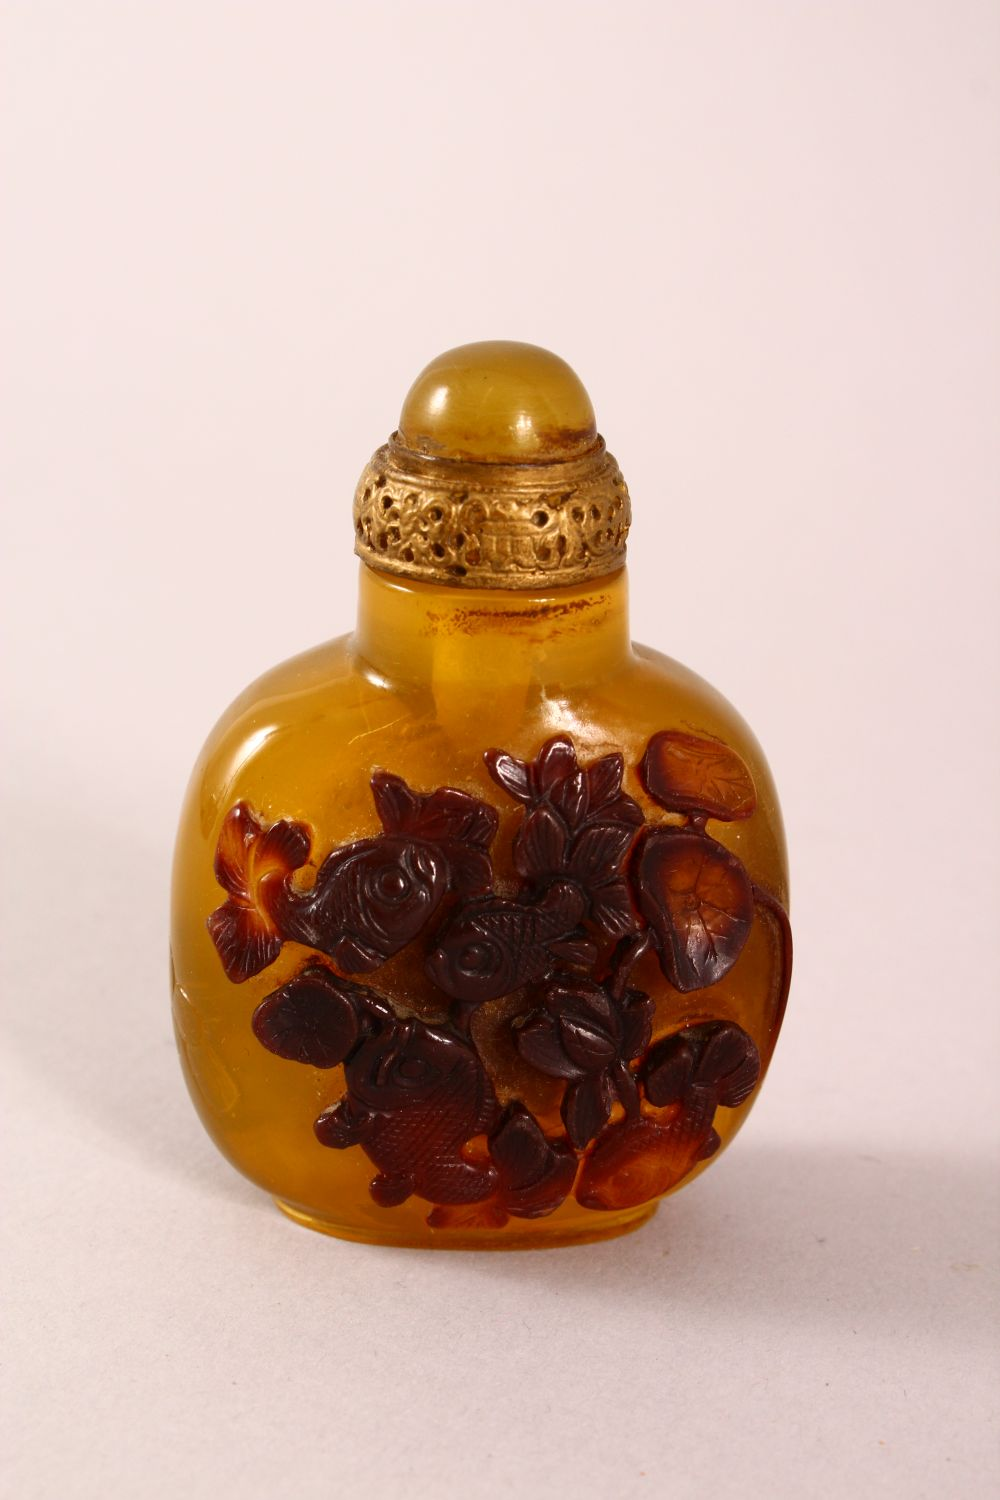 A CHINESE OVERLAID AMBER STYLE SNUFF BOTTLE, with overlay style decoration of fish, with incised - Image 3 of 5